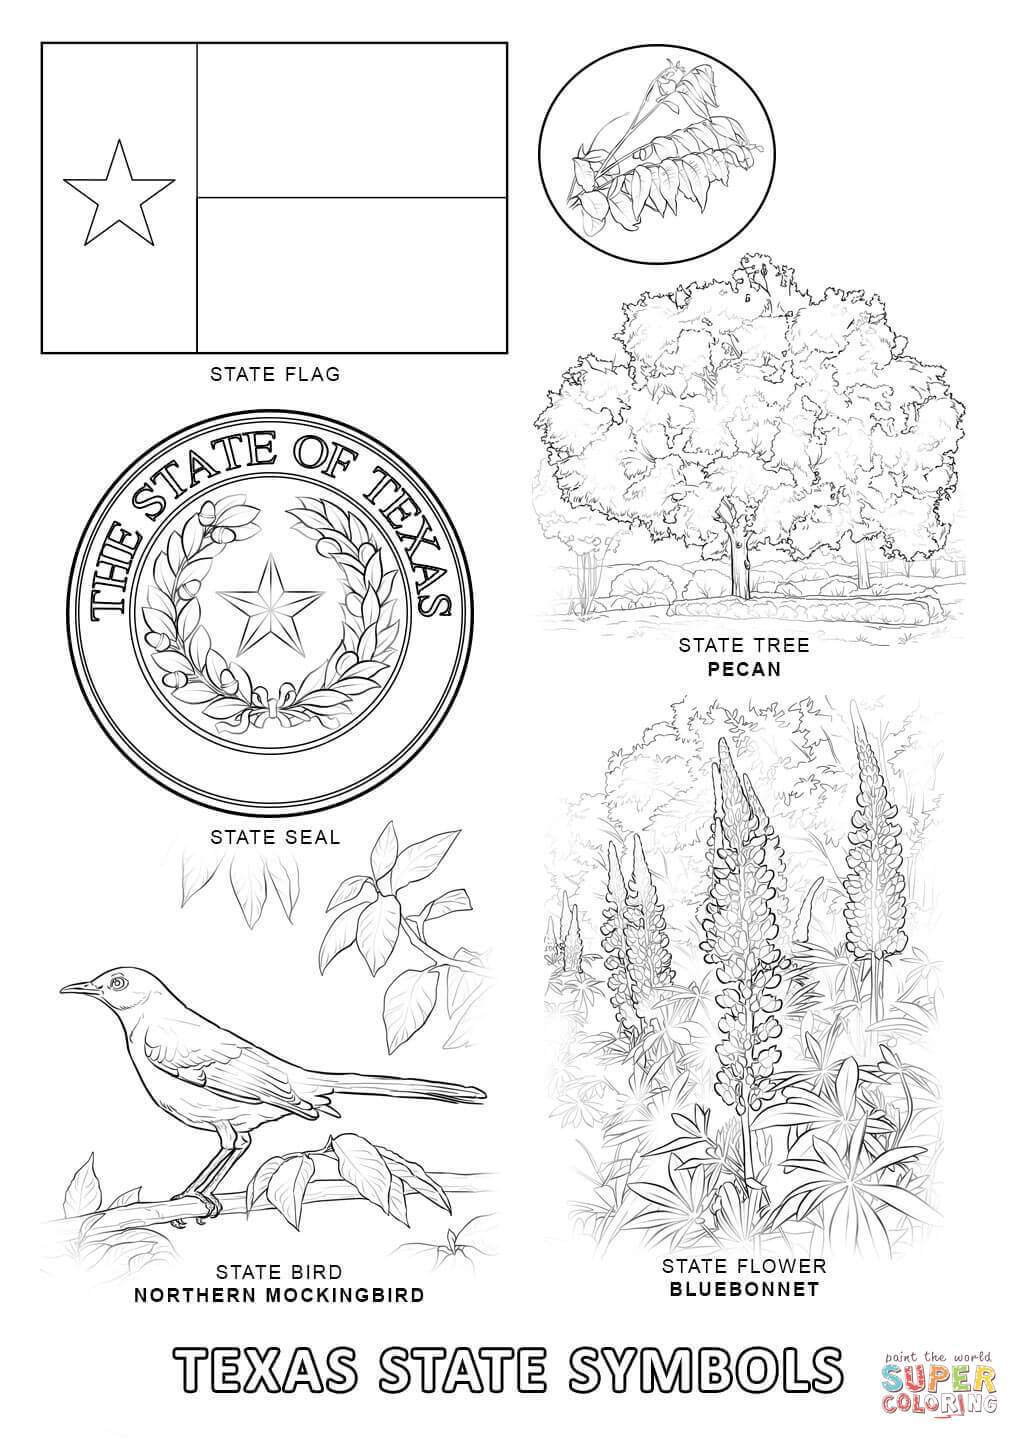 Texas State Symbols Coloring Page Printable Of Perspective Texas Tech Coloring Pages Page to Print